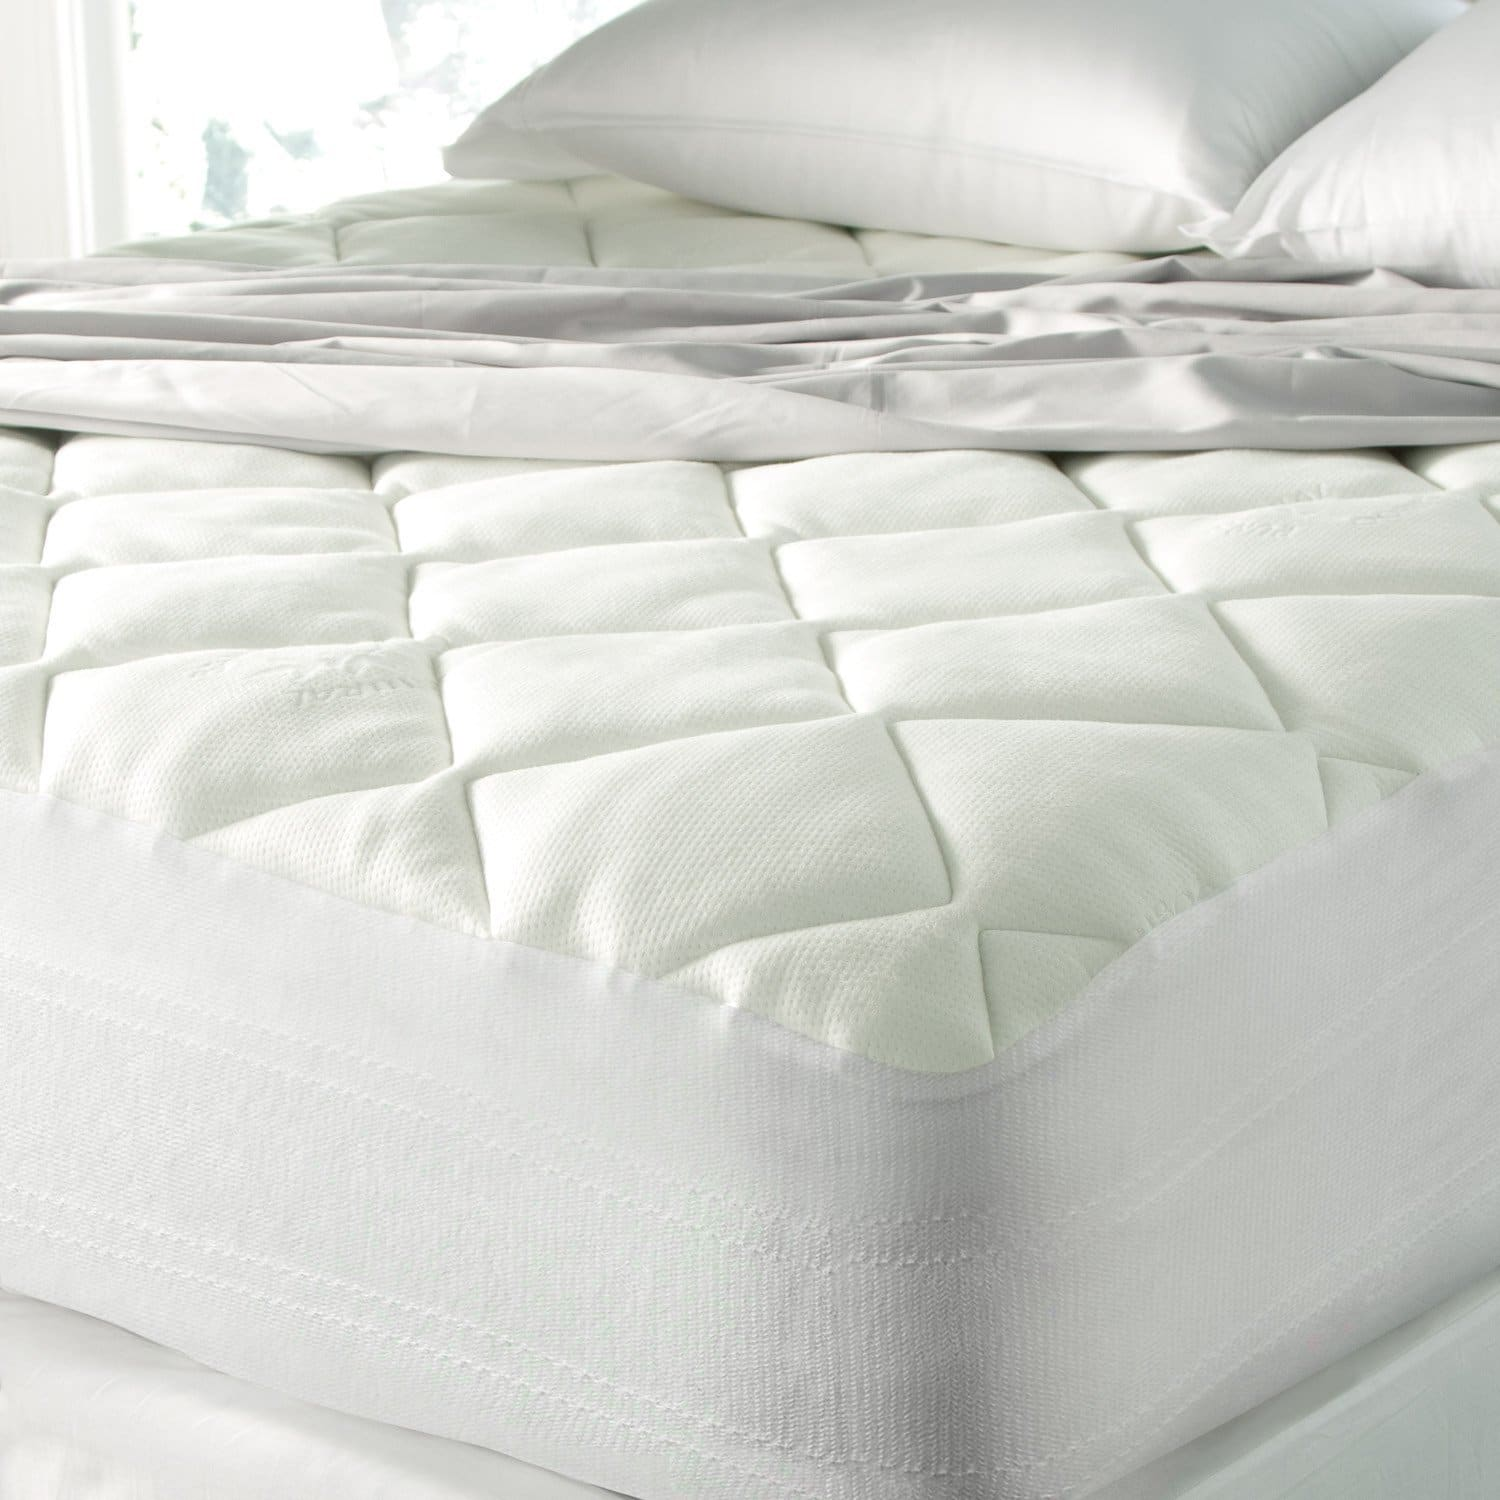 pad fresh bedroom mattress new of white and beautiful with design pillow top topper gel carpet